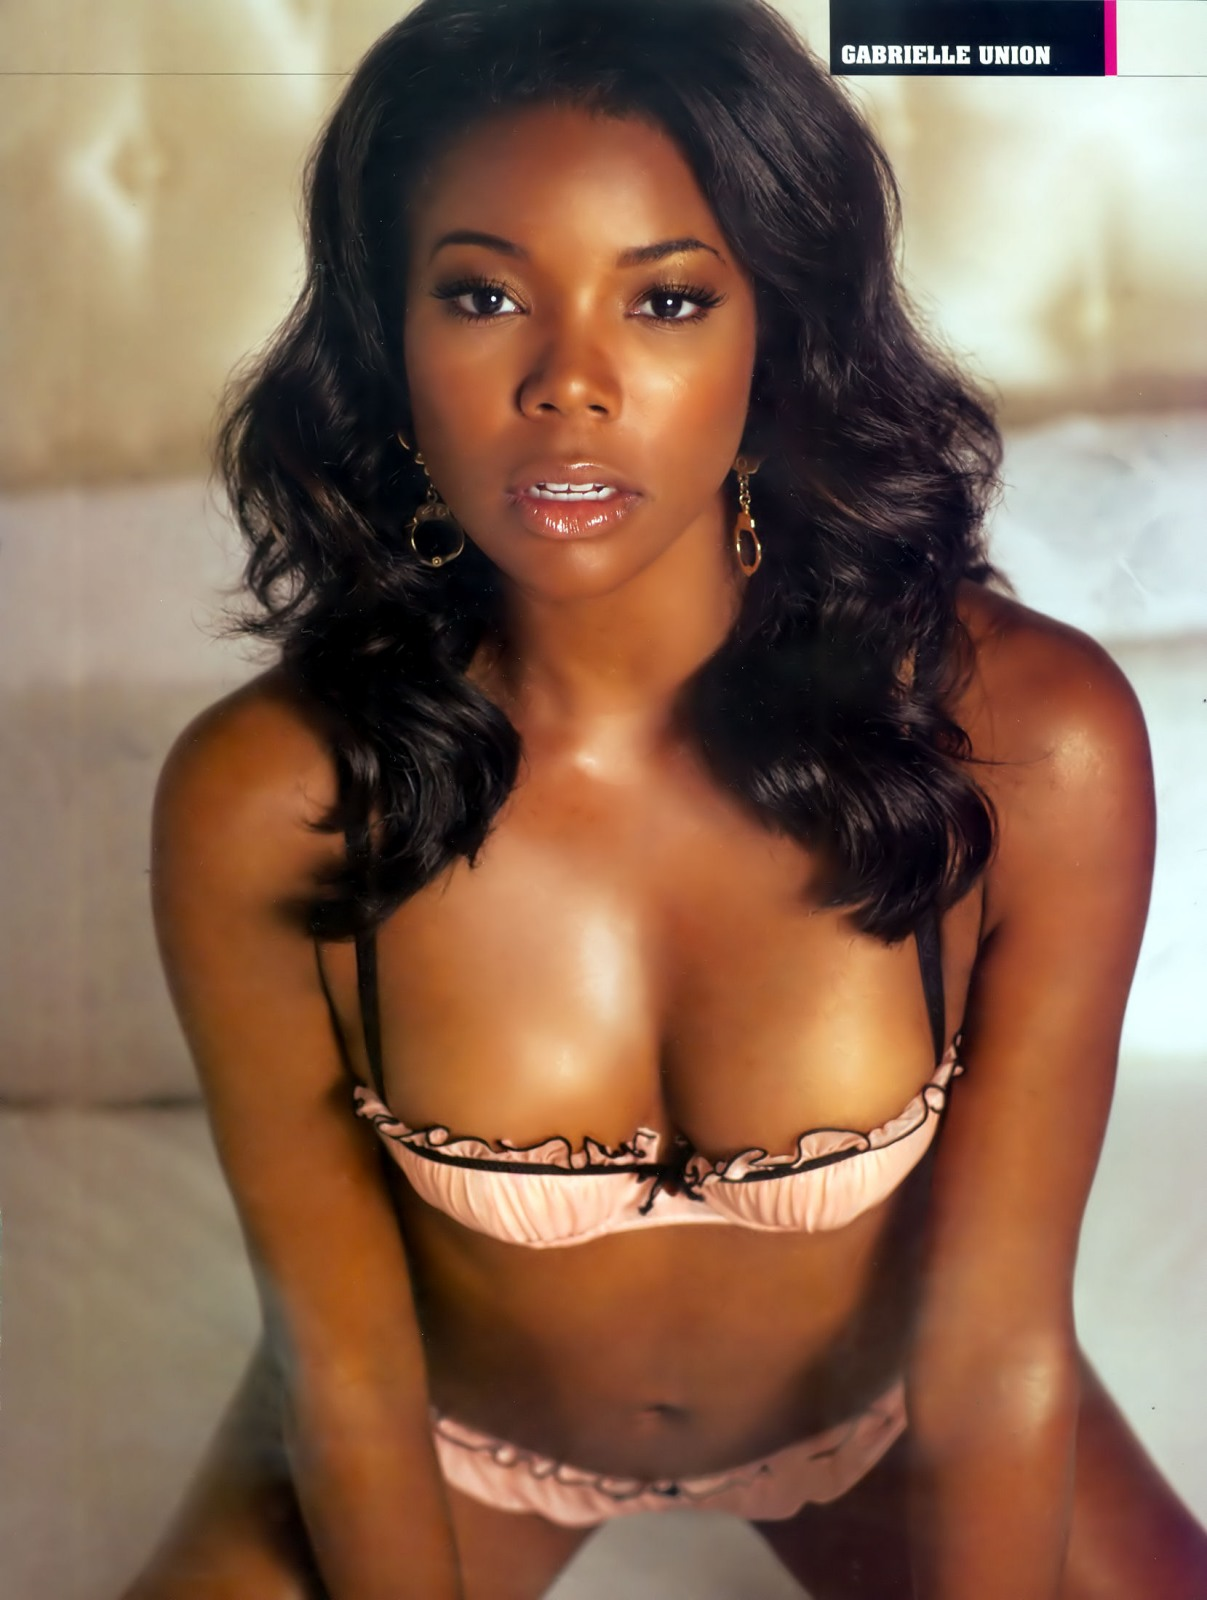 gabrielle union sex tape